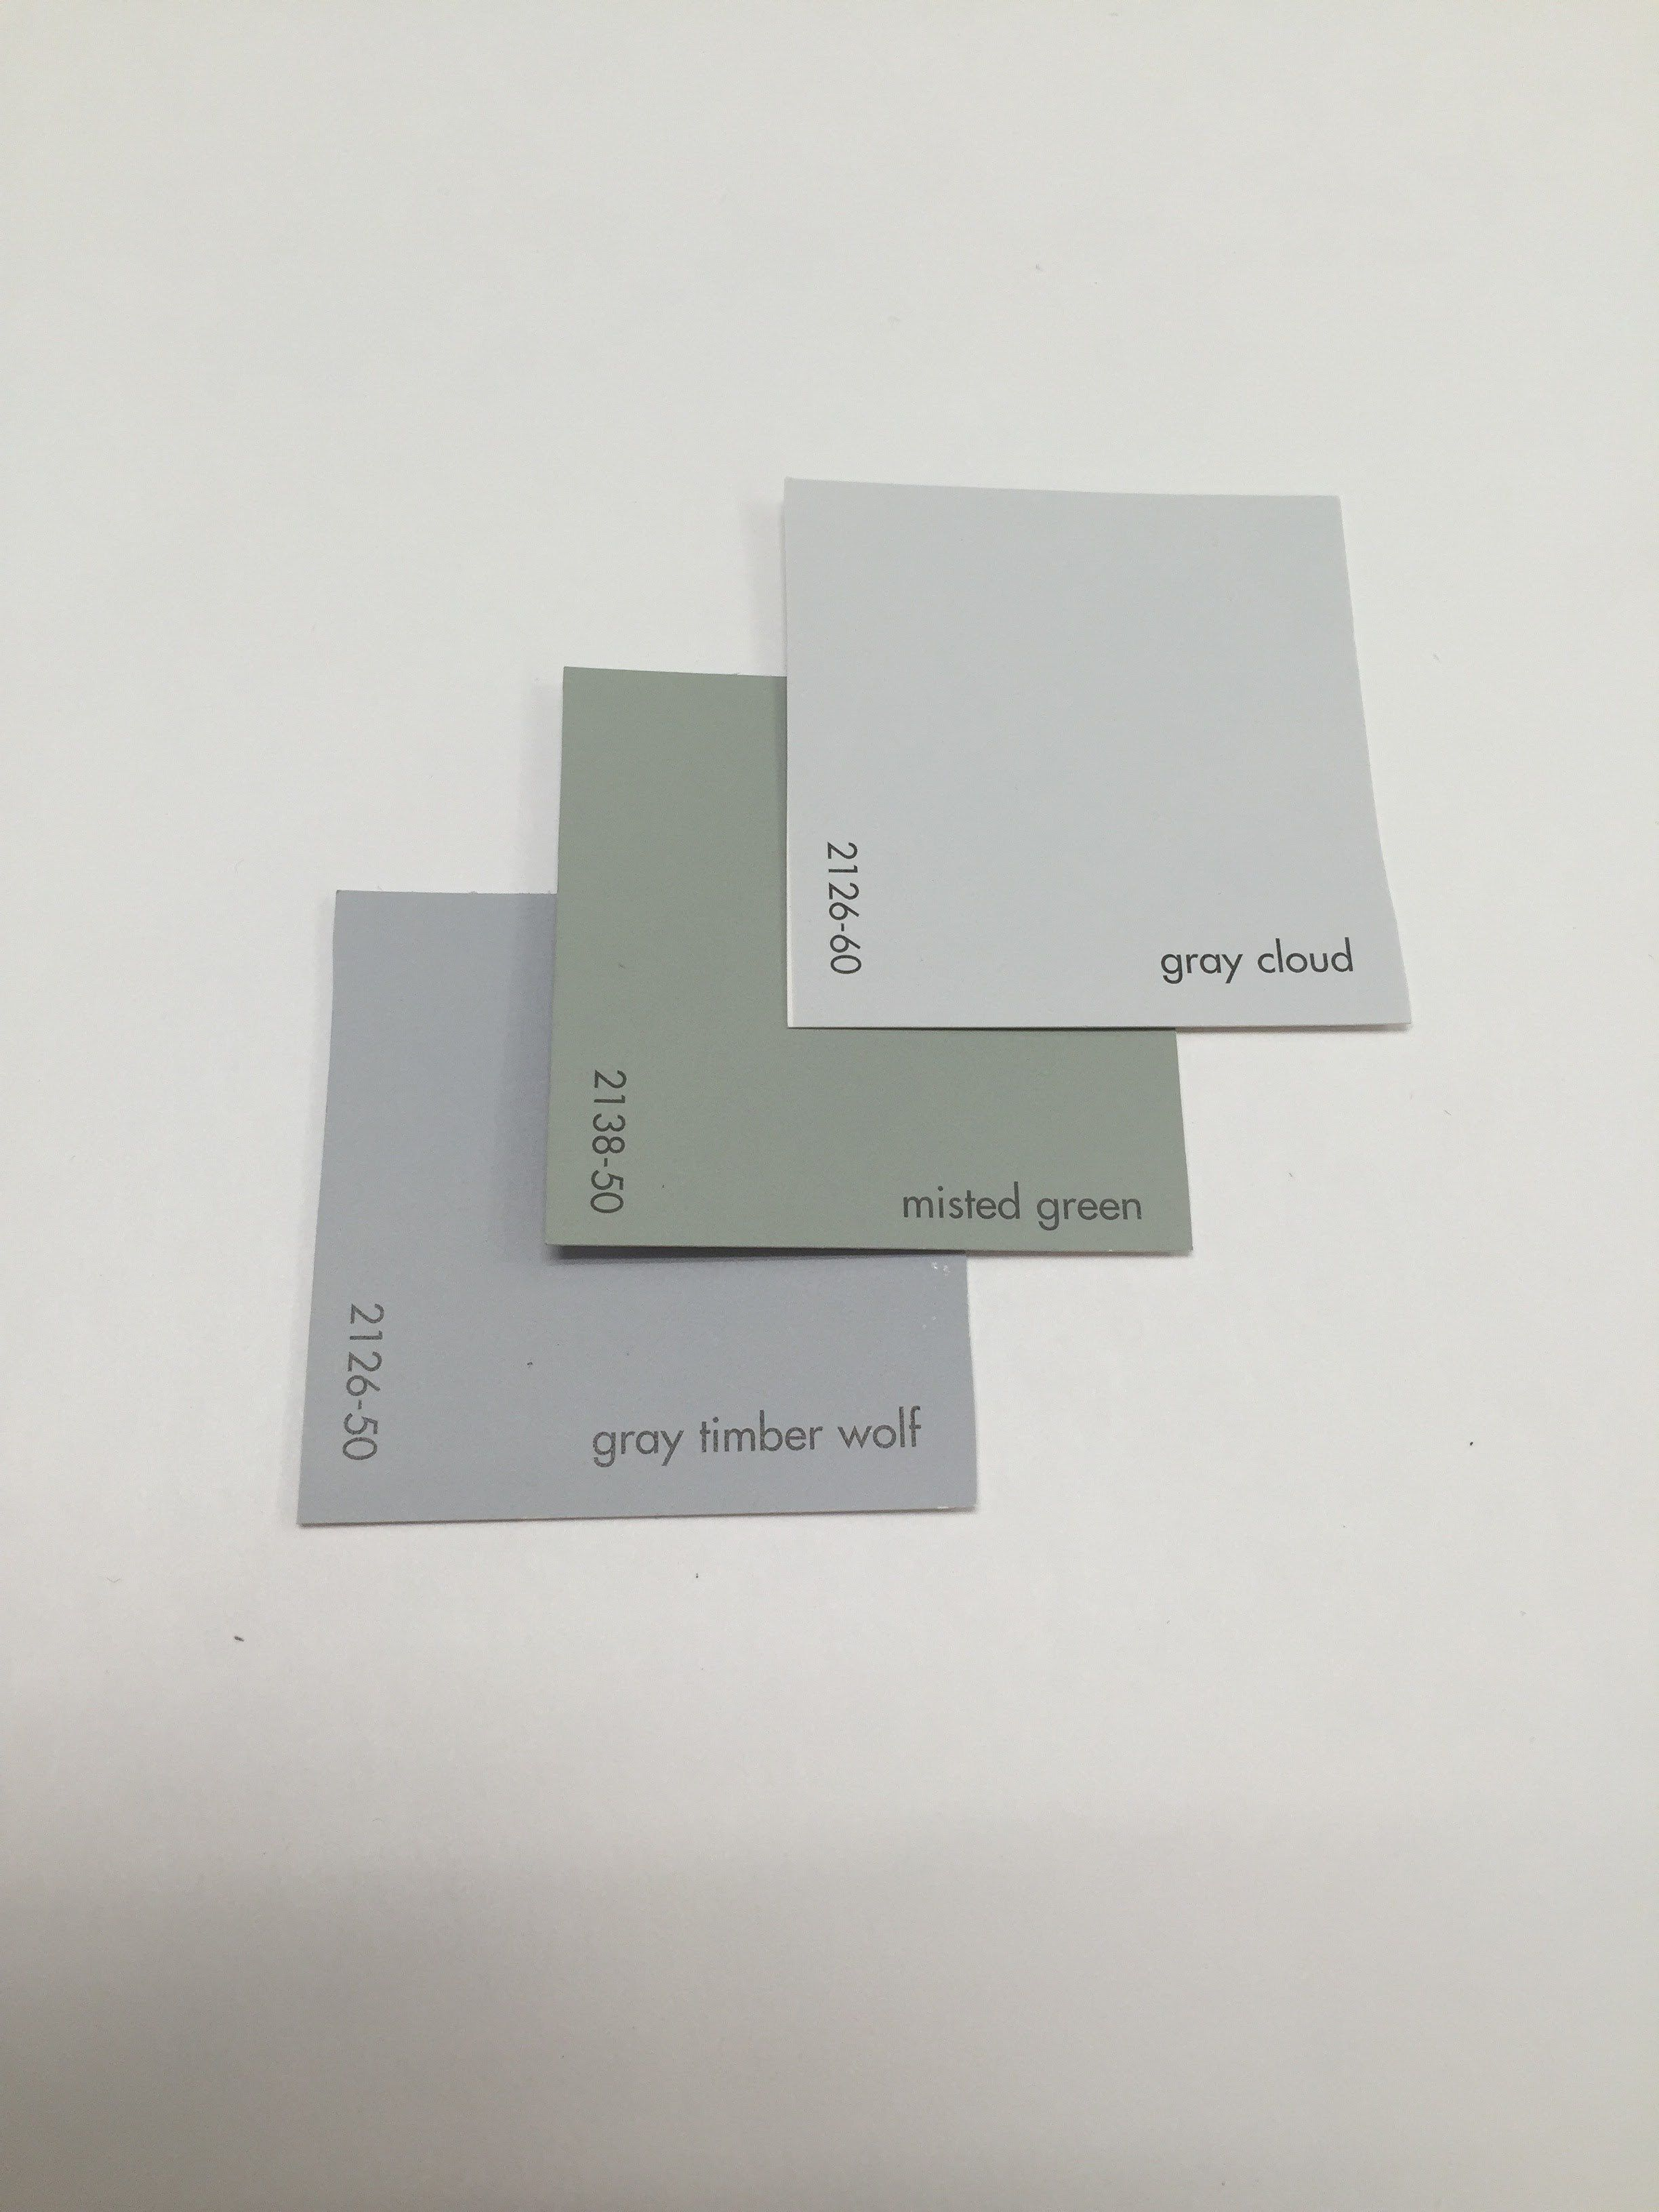 Gray cloud 2126 60 misted green 2138 50 gray timber wolf Green grey paint benjamin moore